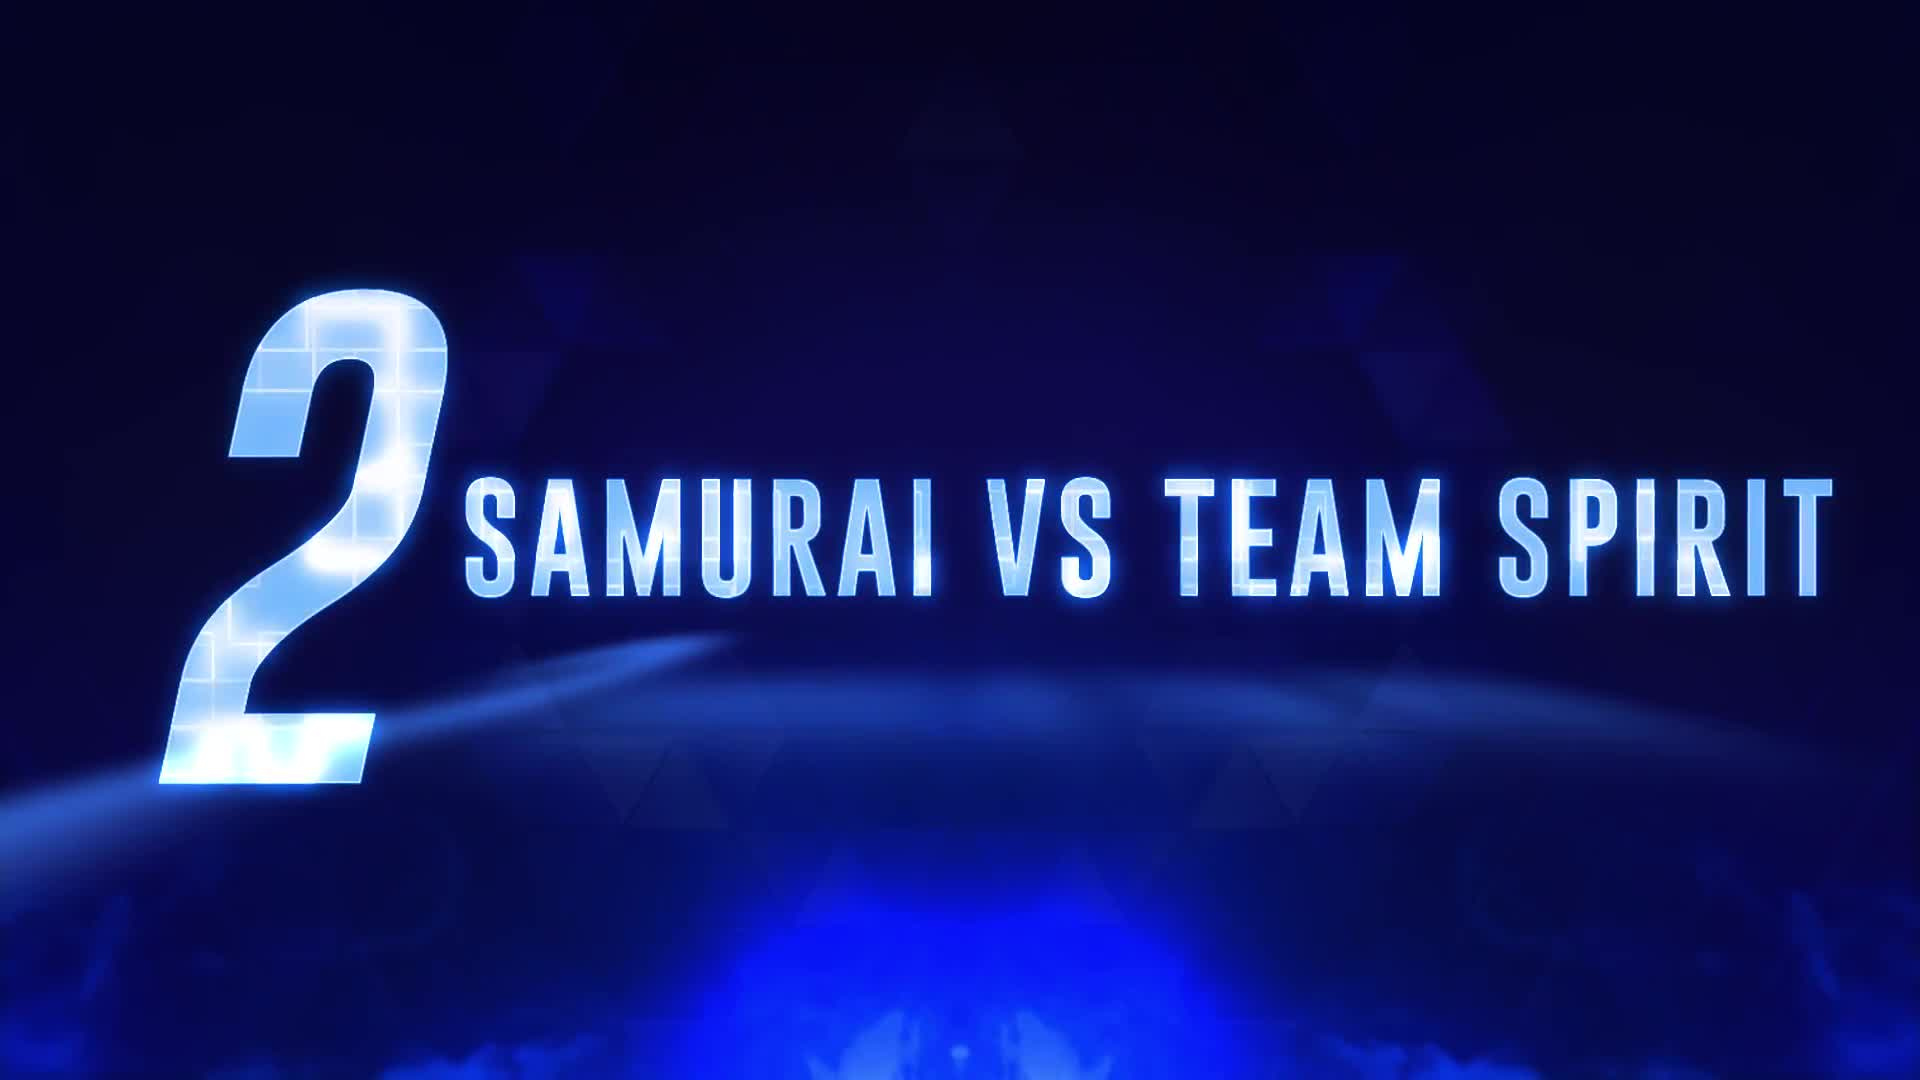 capcom, capcom fighters, combos, esports, fighter, fighting, games, gaming, playstation, ps3, ps4, sony, street, tournament, tutorial, SFL: PRO US 2019 TOP 5 MOMENTS - Week 6 Season 1 GIFs